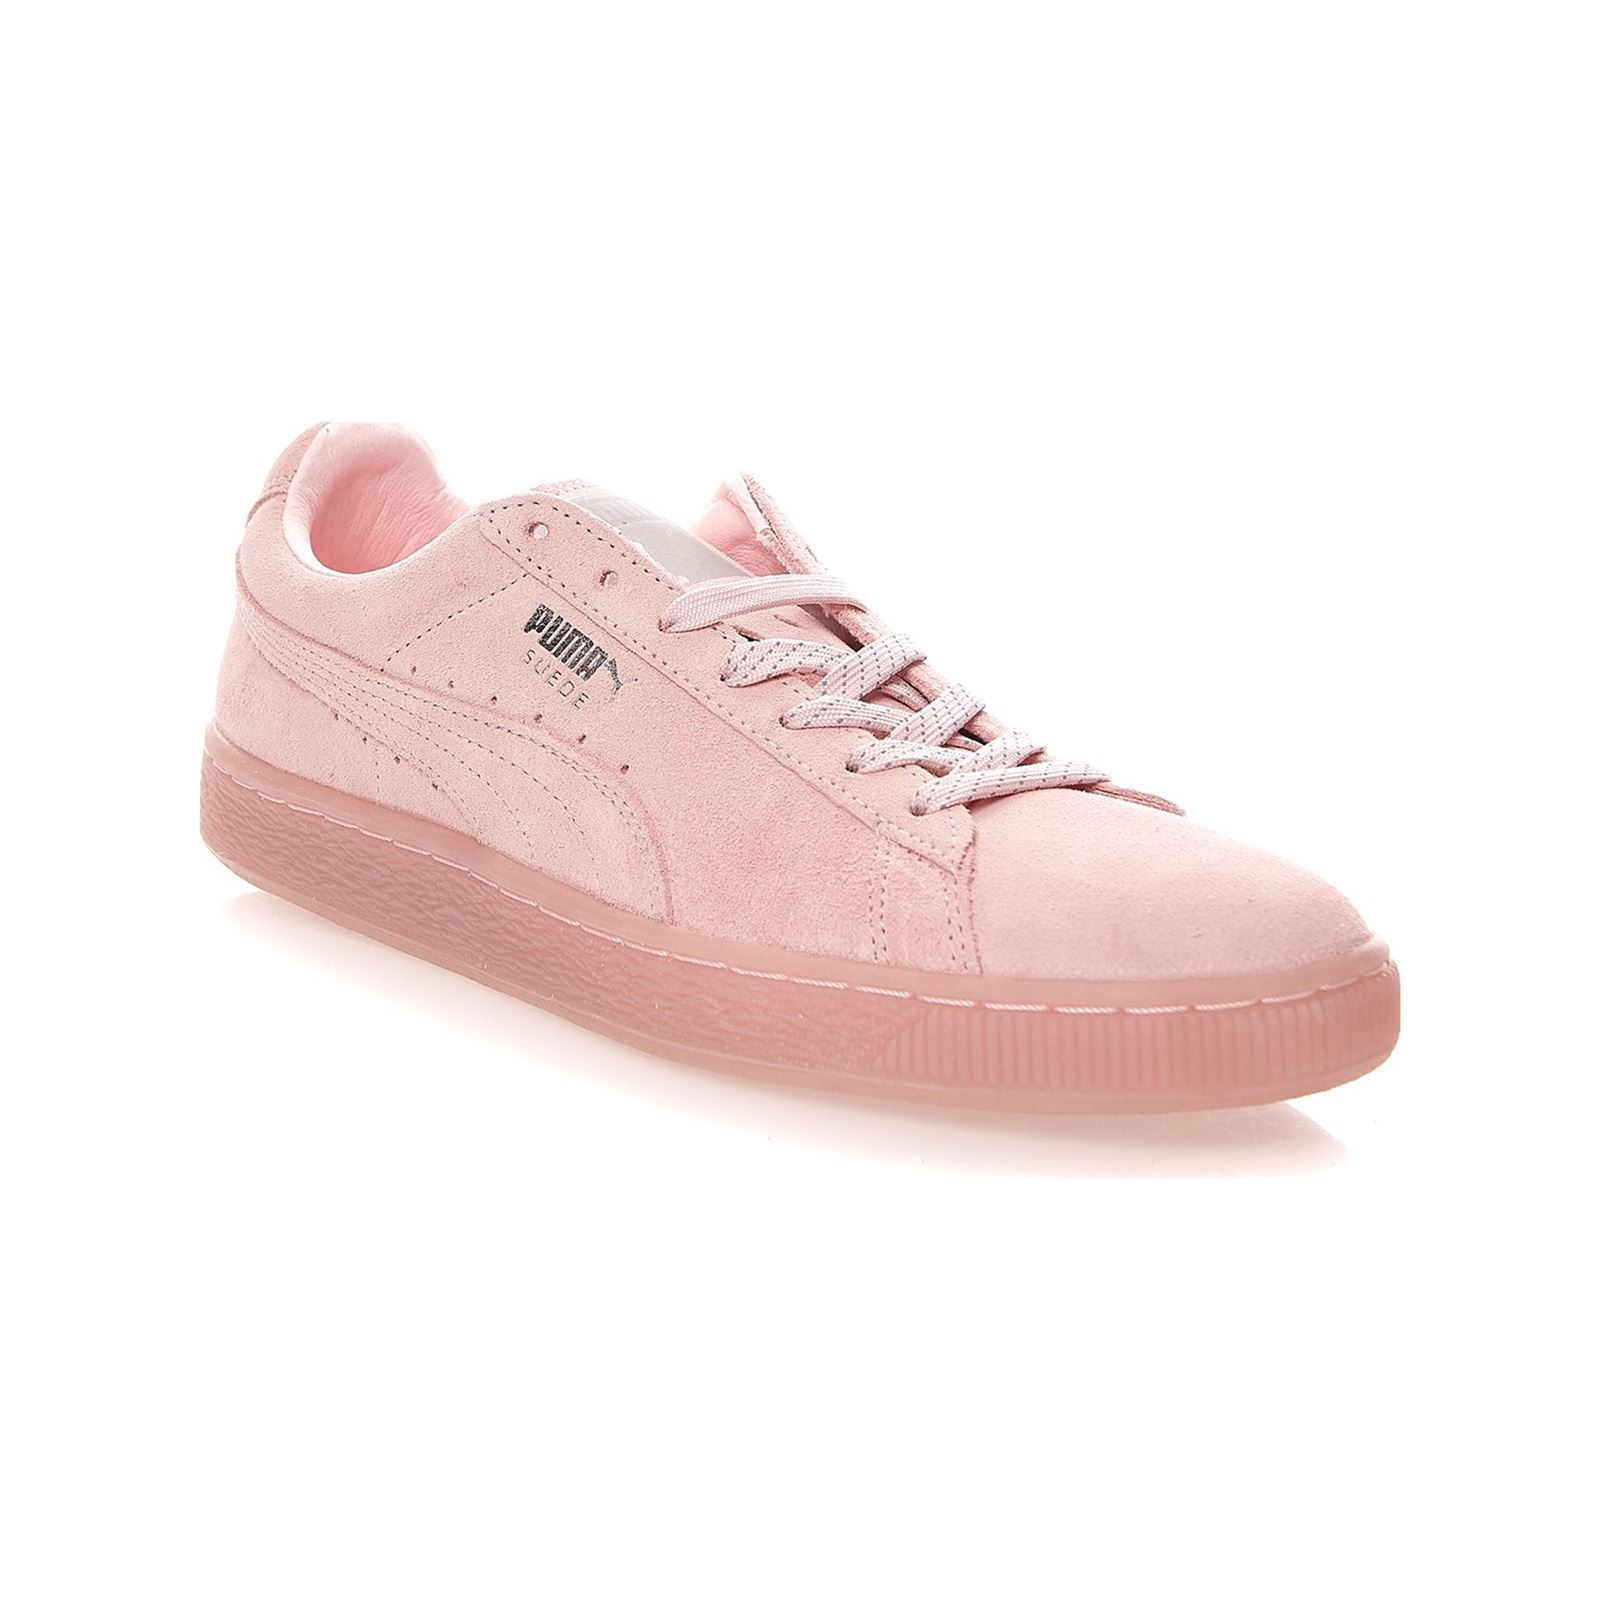 Puma Baskets en cuir - rose clair  Baskets